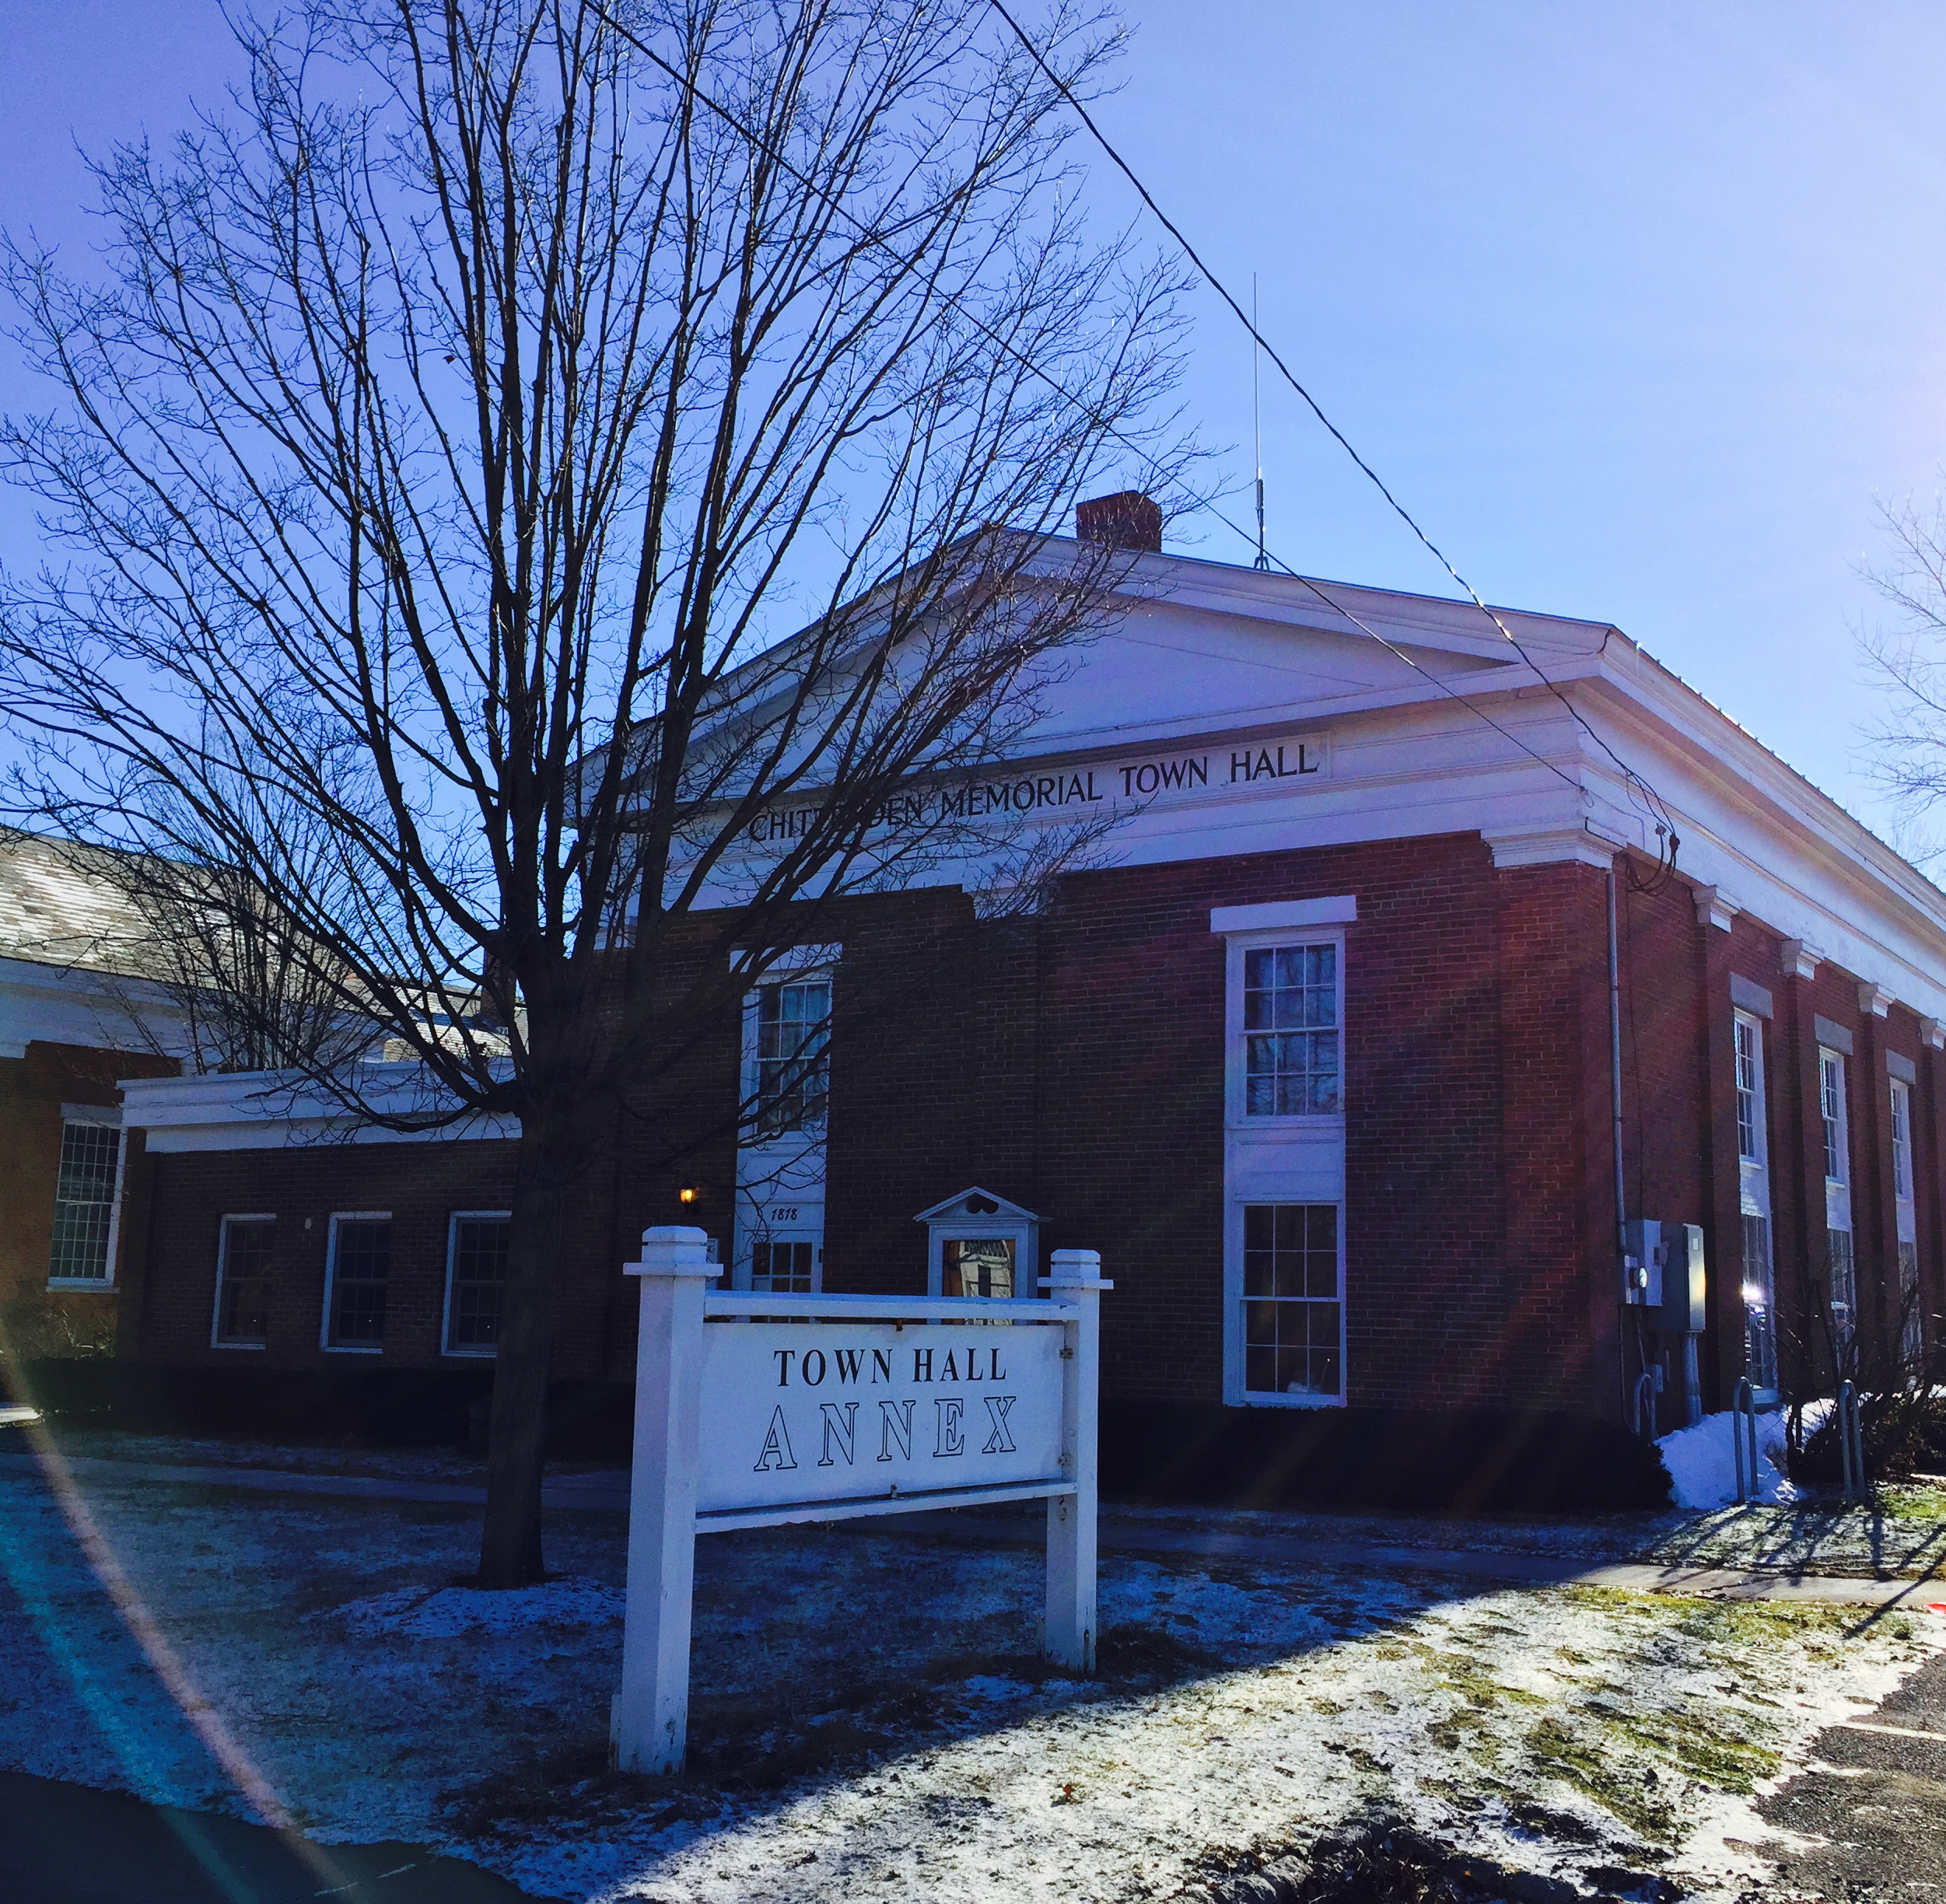 Chittenden Memorial Town Hall